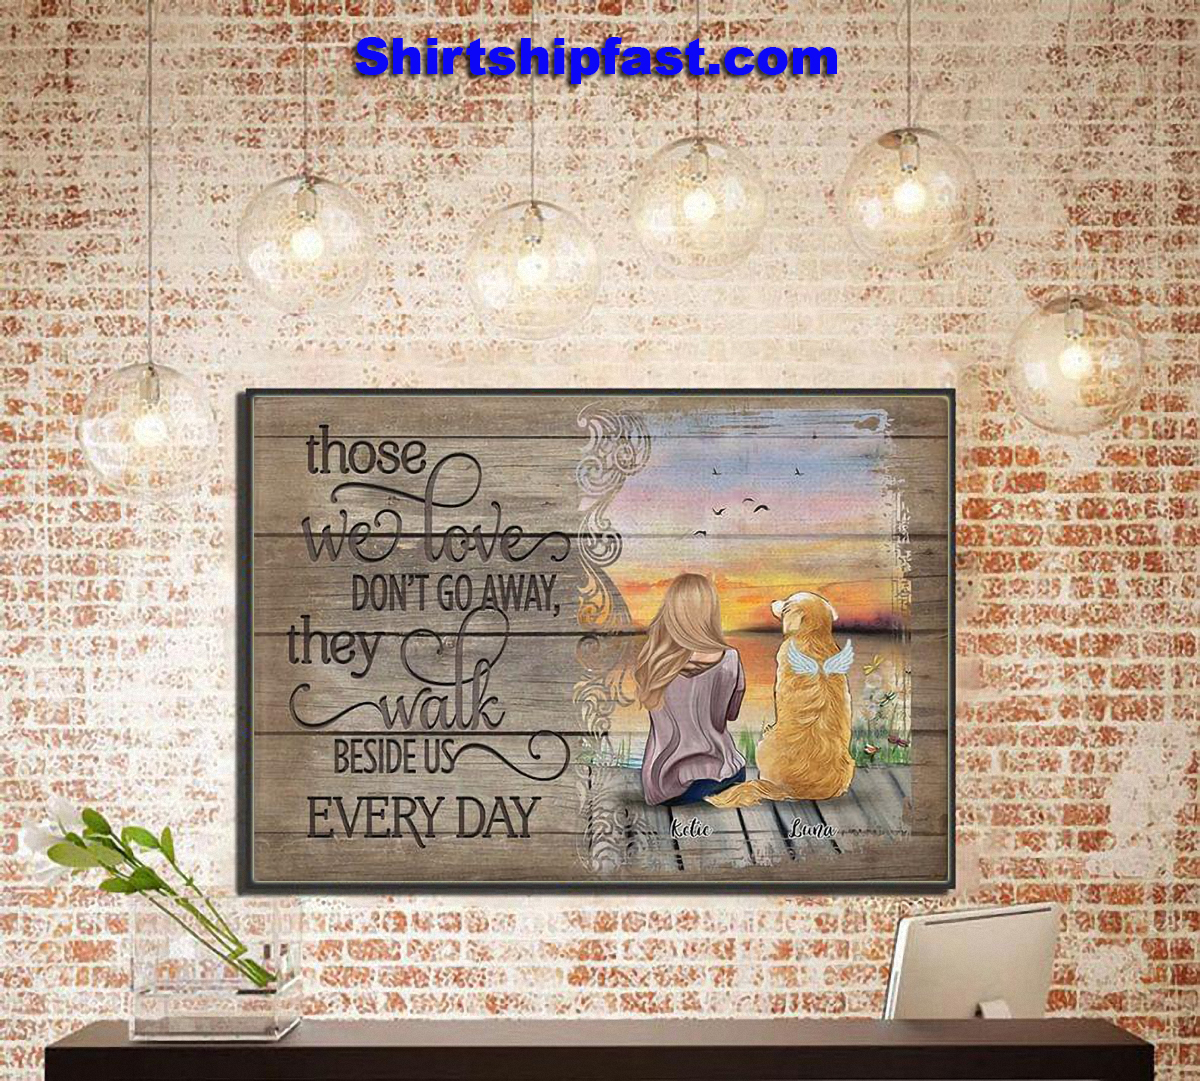 Those we love don't go away they walk beside us every day personalized poster - Picture 3